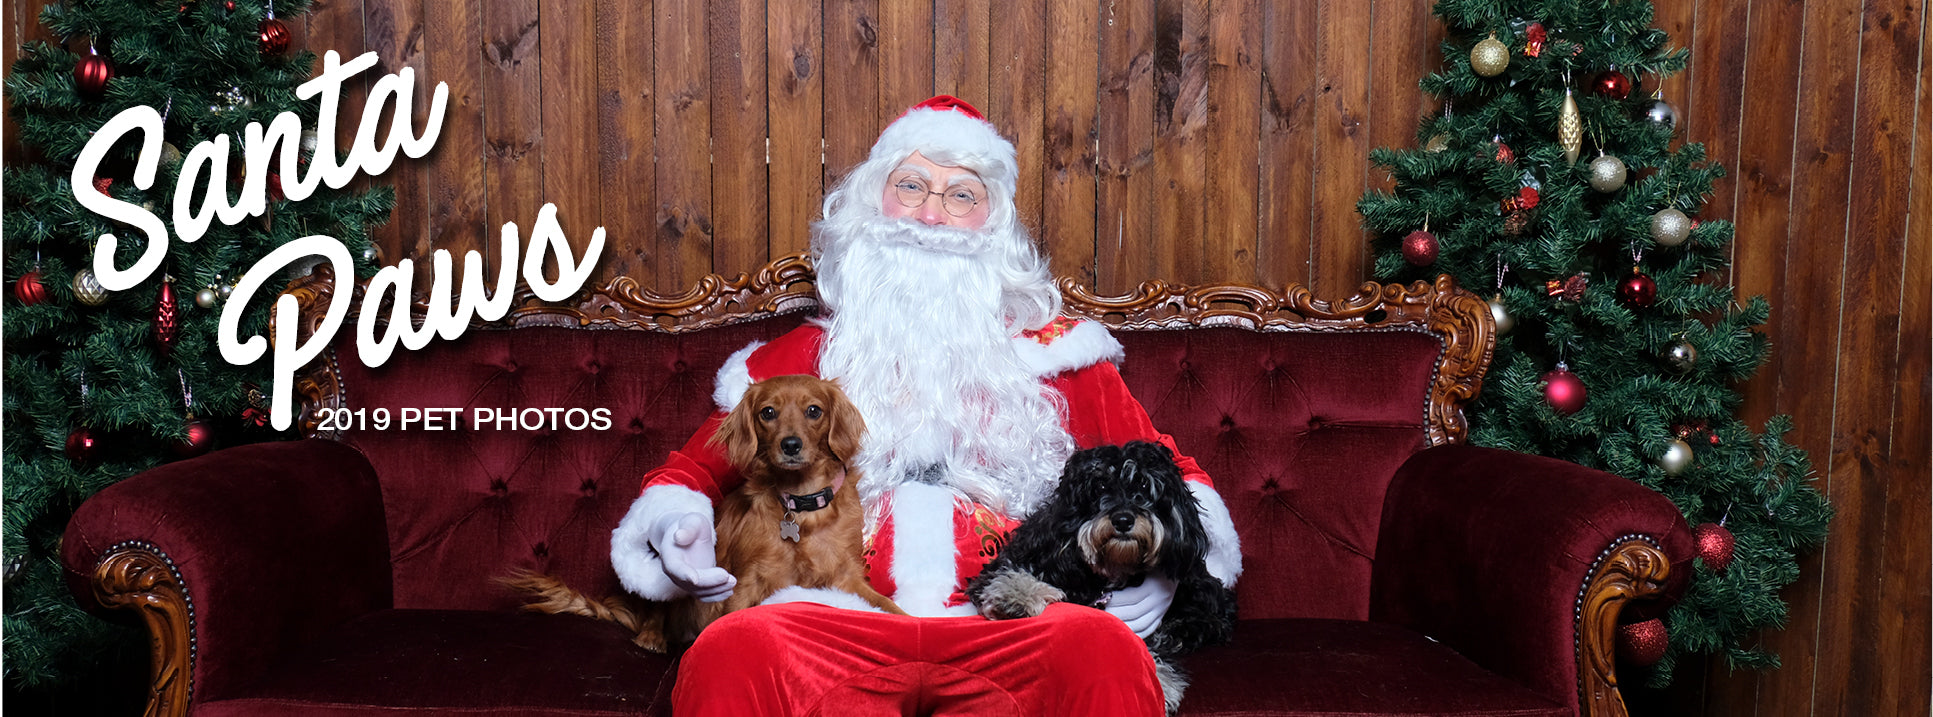 Santa Pet Photos Sydney 2019